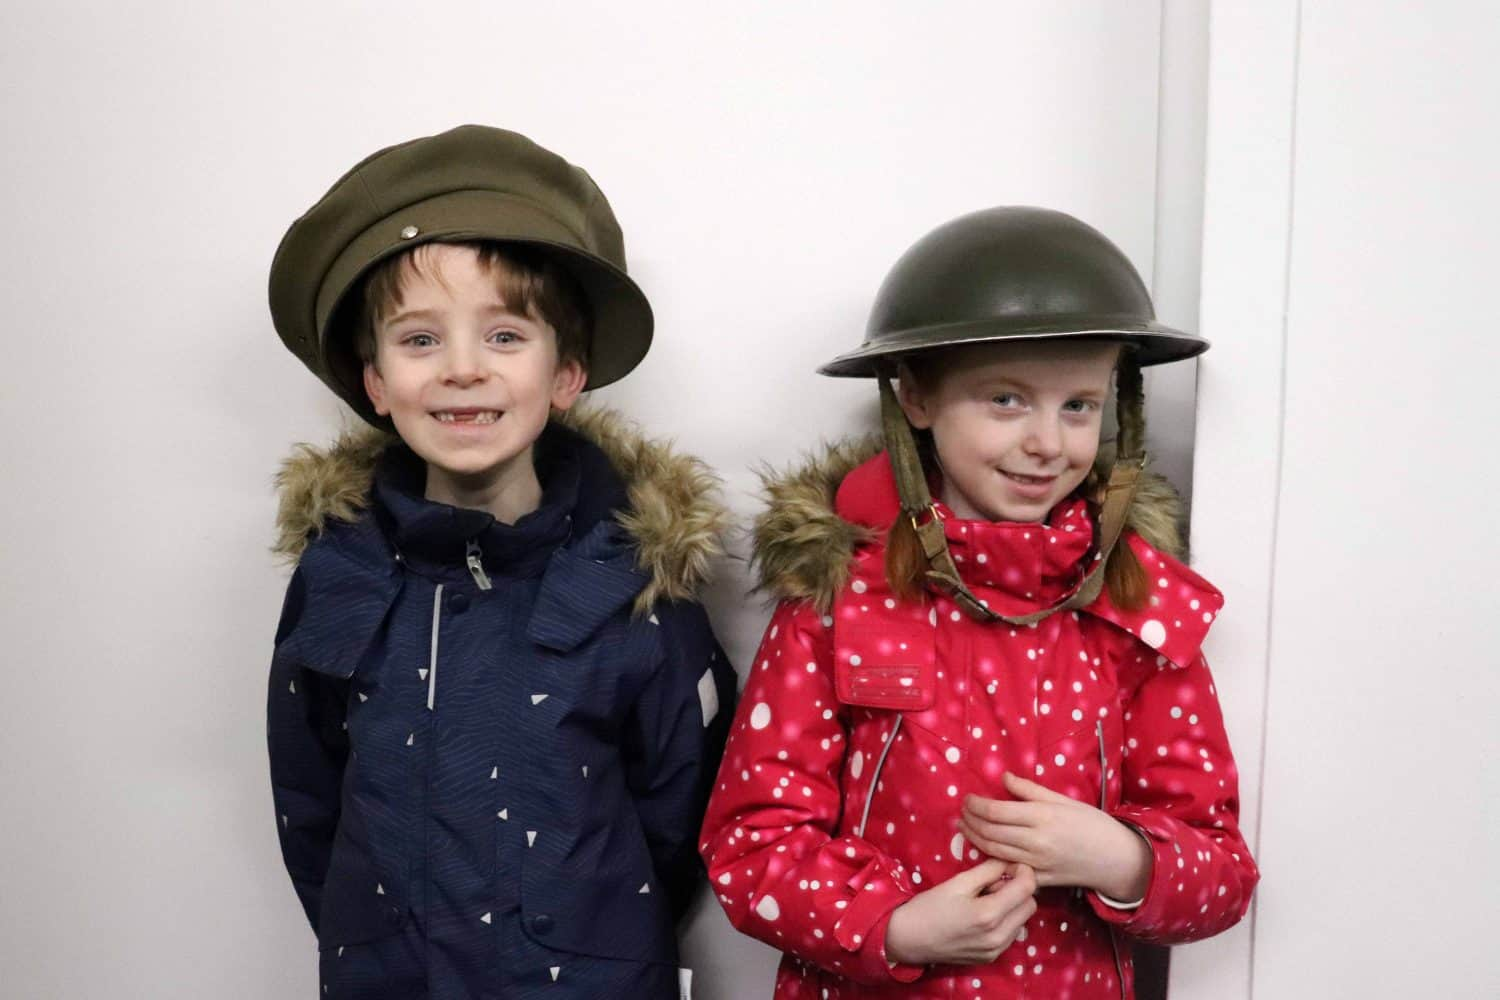 Trying on hats at Bletchley Park